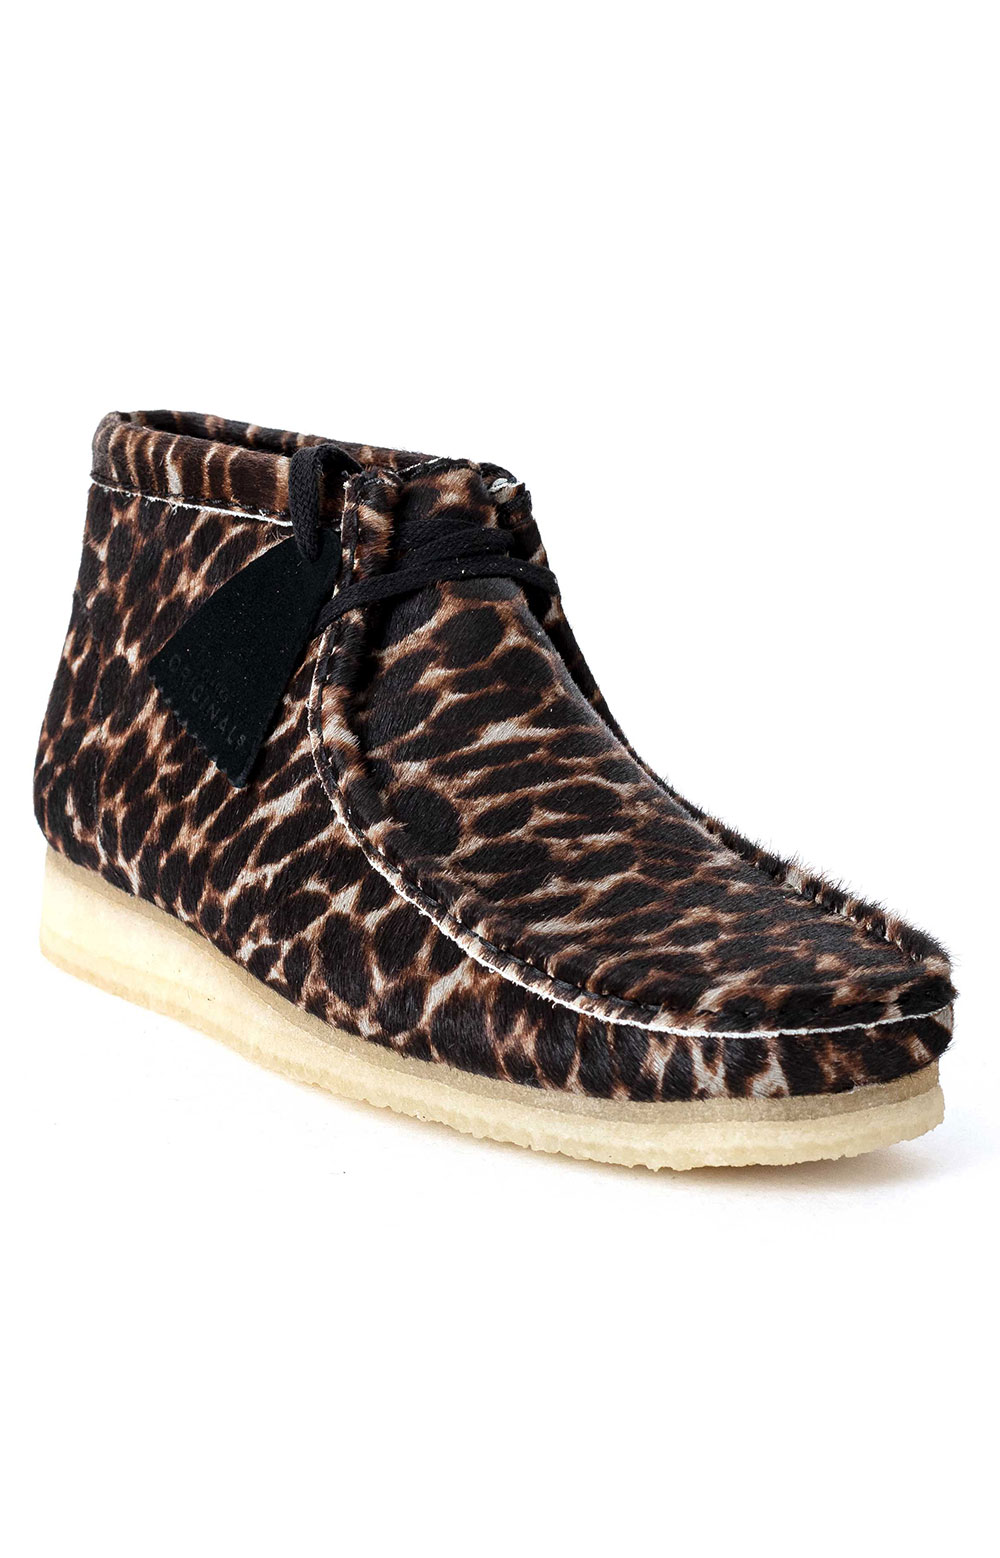 (26146759) Wallabee Boot - Black Animal Print 3